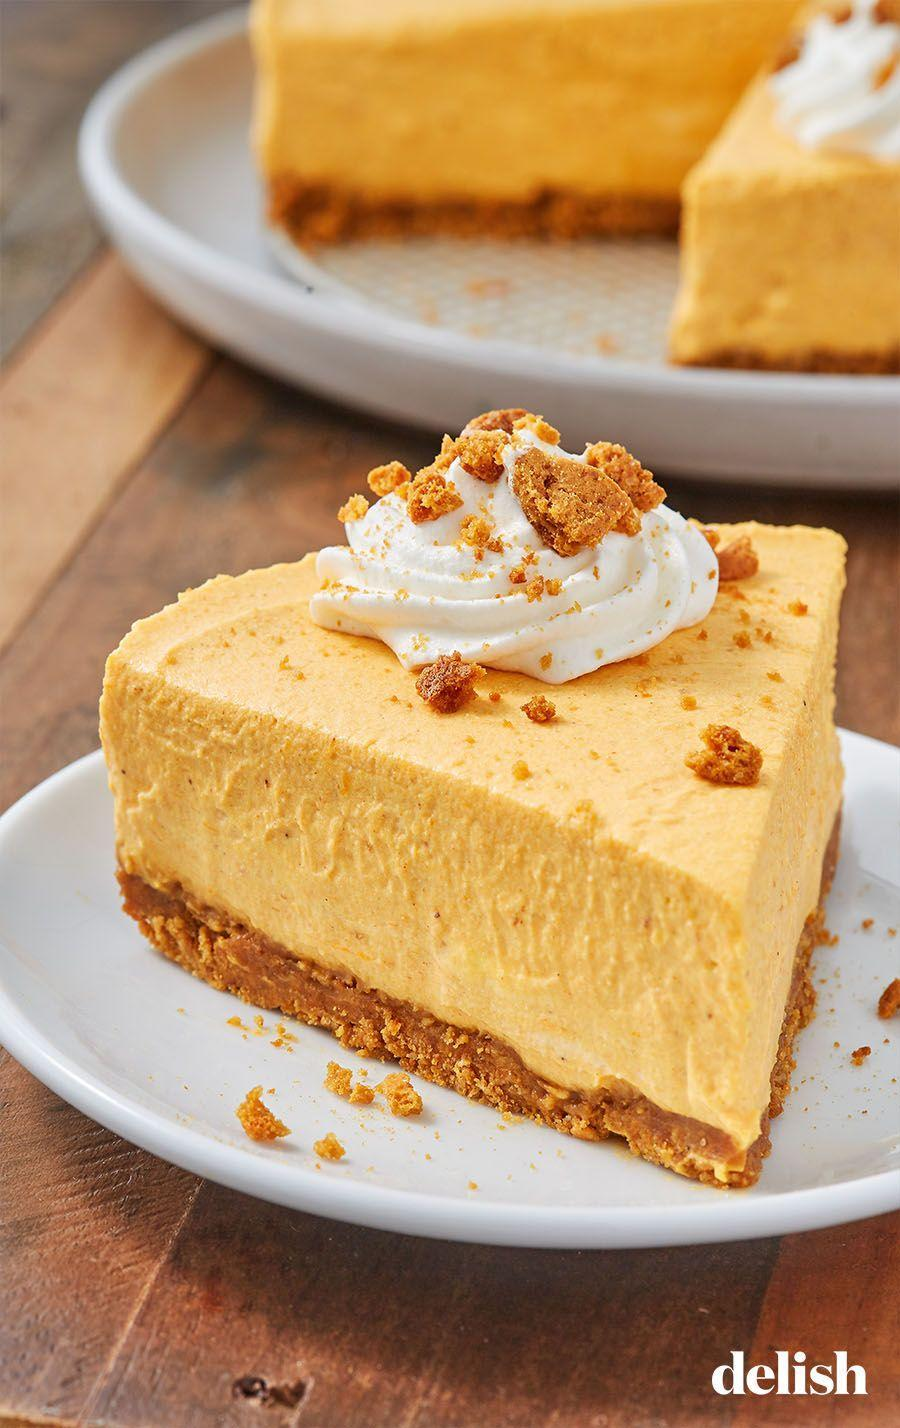 """<p>The gingersnap crust is to die for. </p><p>Get the recipe from <a href=""""https://www.delish.com/cooking/recipe-ideas/a28497825/easy-no-bake-pumpkin-cheesecake-recipe/"""" rel=""""nofollow noopener"""" target=""""_blank"""" data-ylk=""""slk:Delish"""" class=""""link rapid-noclick-resp"""">Delish</a>.</p>"""